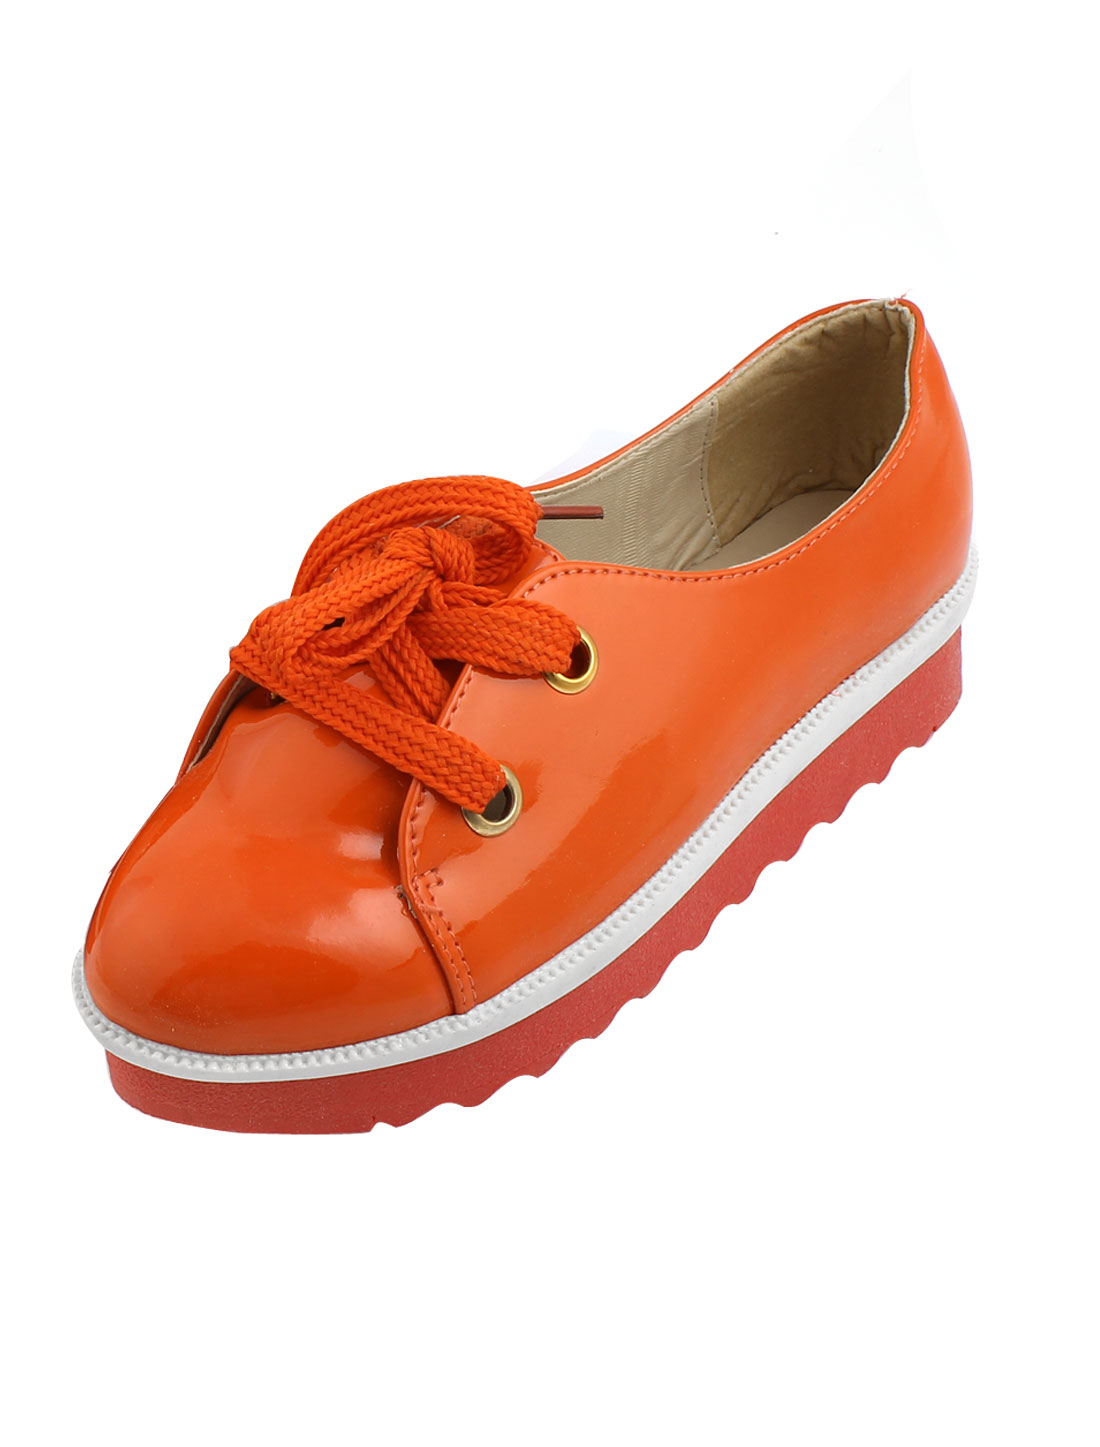 Women Orange Patent Leather Sperry Top-Sider Boat Shoes Size US 7.5